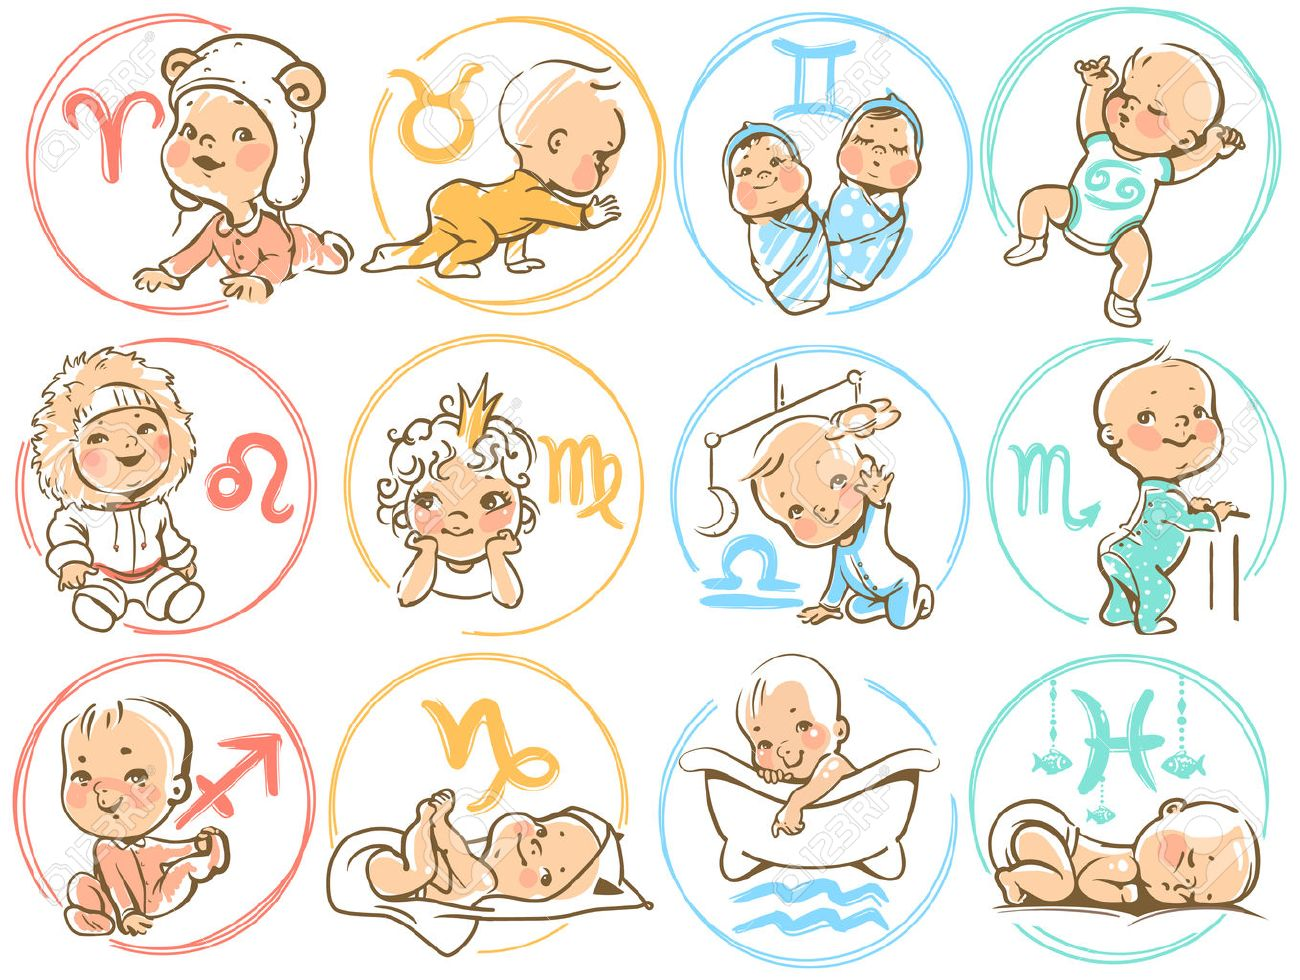 Set of zodiac icons. Horoscope signs as cartoon characters. Cute baby boys and girls as astrological symbol. Colorful vector illustration. Baby in diaper, crawling, sitting, smiling, sleeping baby Stock Vector - 48965717